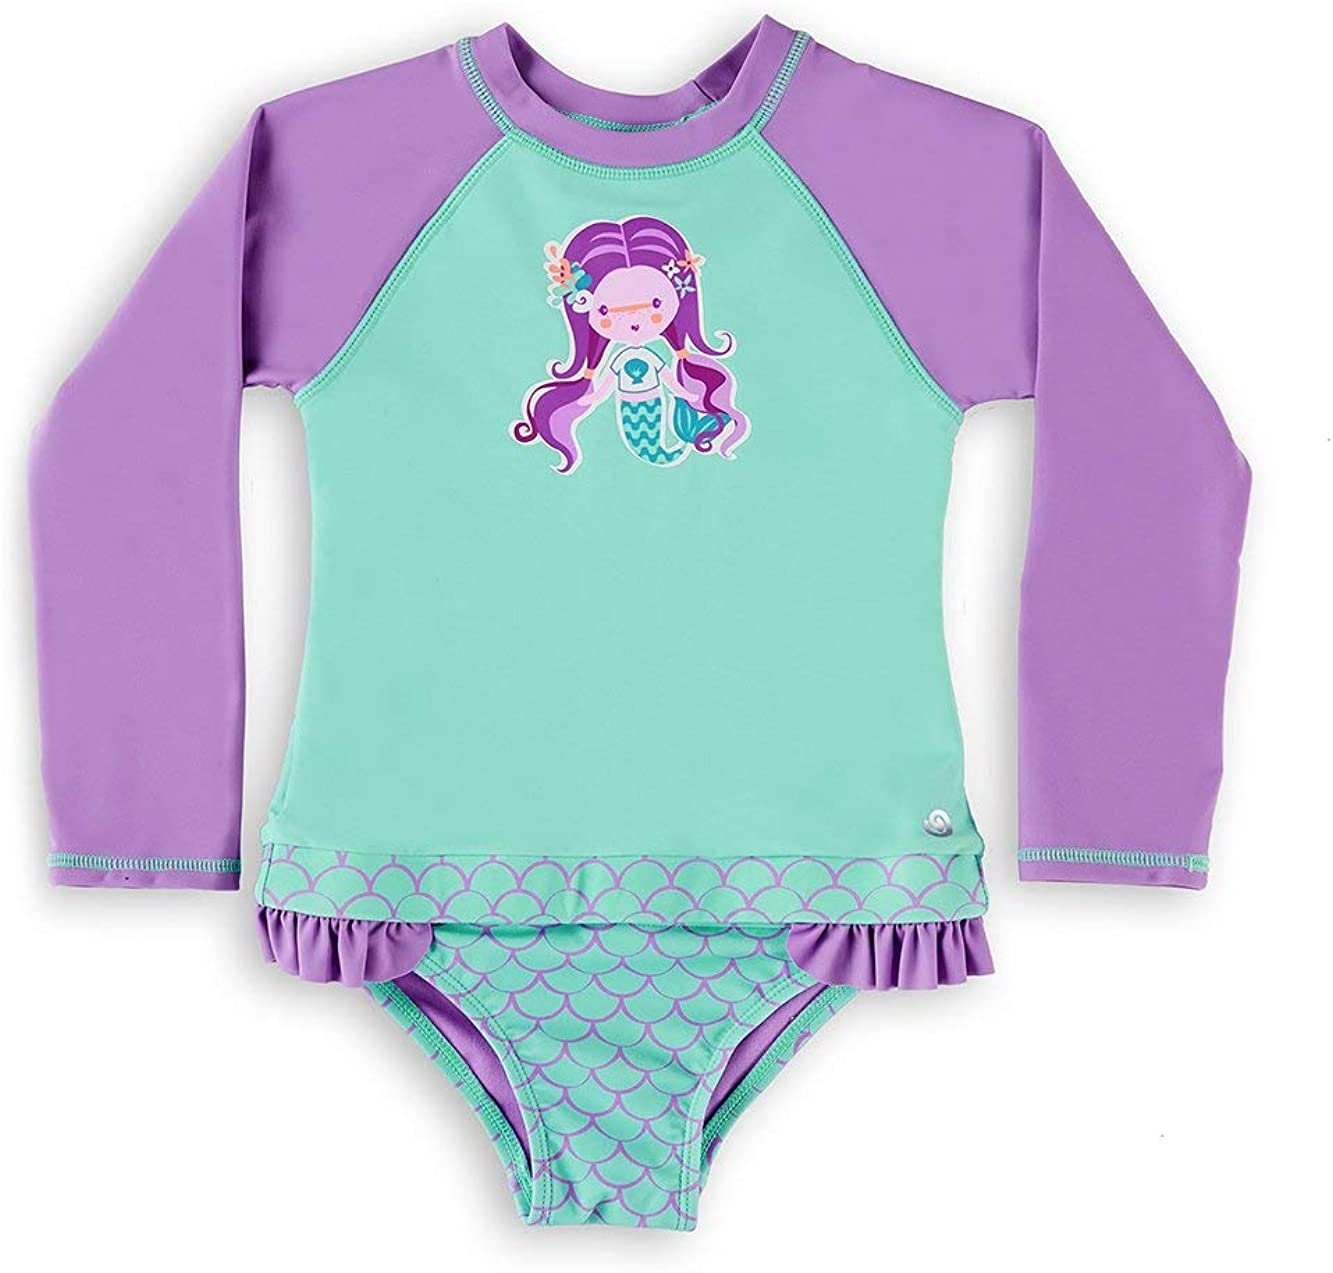 wowease Patented Baby One-Piece Bathing-Suit Mer Girl with Magnetease Technology